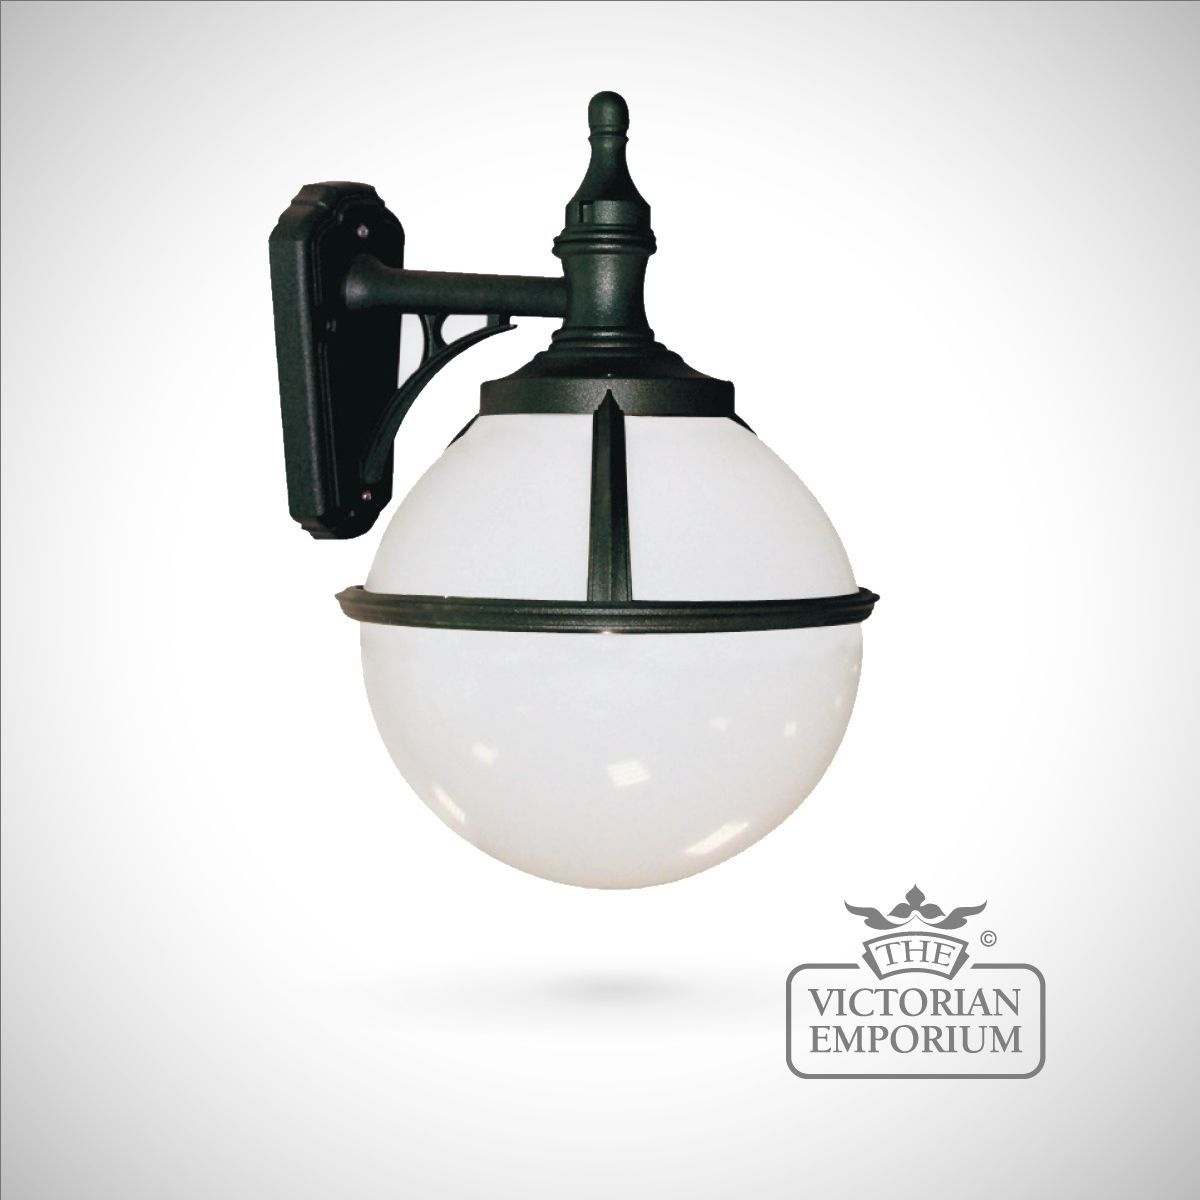 Buy Globe Wall Lantern, Outdoor Wall Lights – Spherical Black Wall For Outdoor Hanging Globe Lights (View 15 of 15)